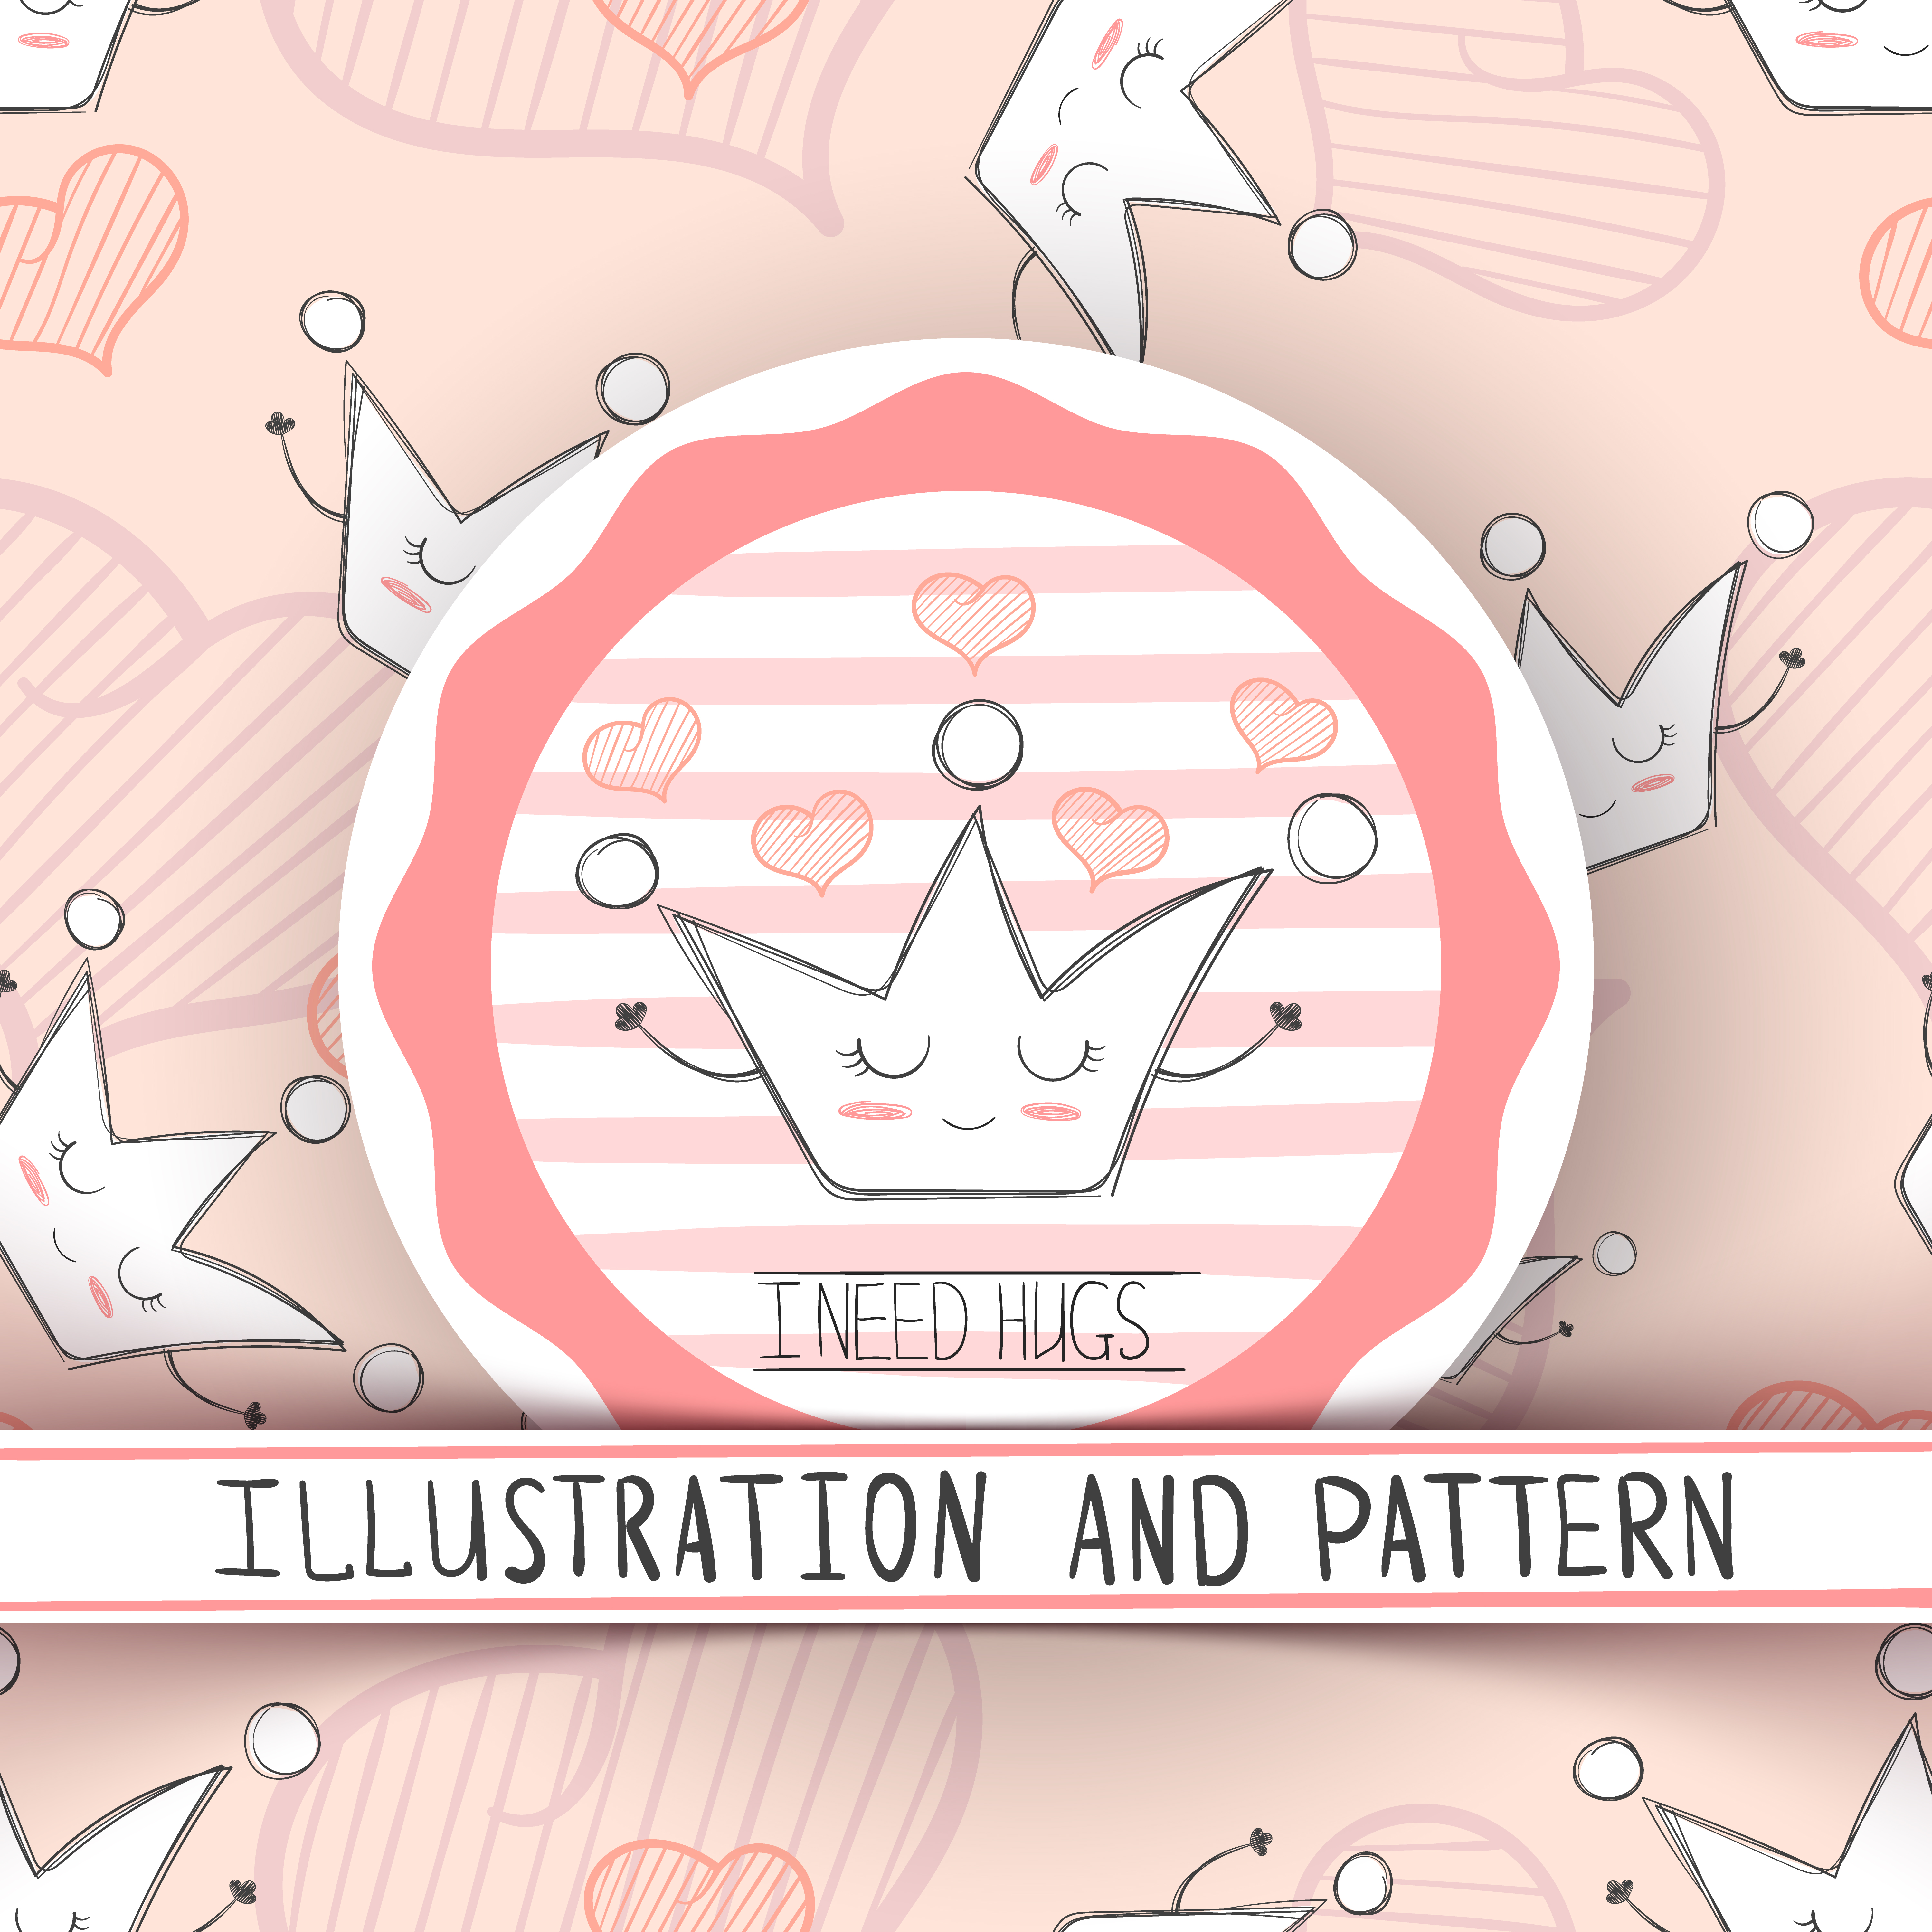 Cartoon Crown Characters Cute Illustration And Pattern Download Free Vectors Clipart Graphics Vector Art Huge collection, amazing choice, 100+ million high quality, affordable rf and rm images. vecteezy